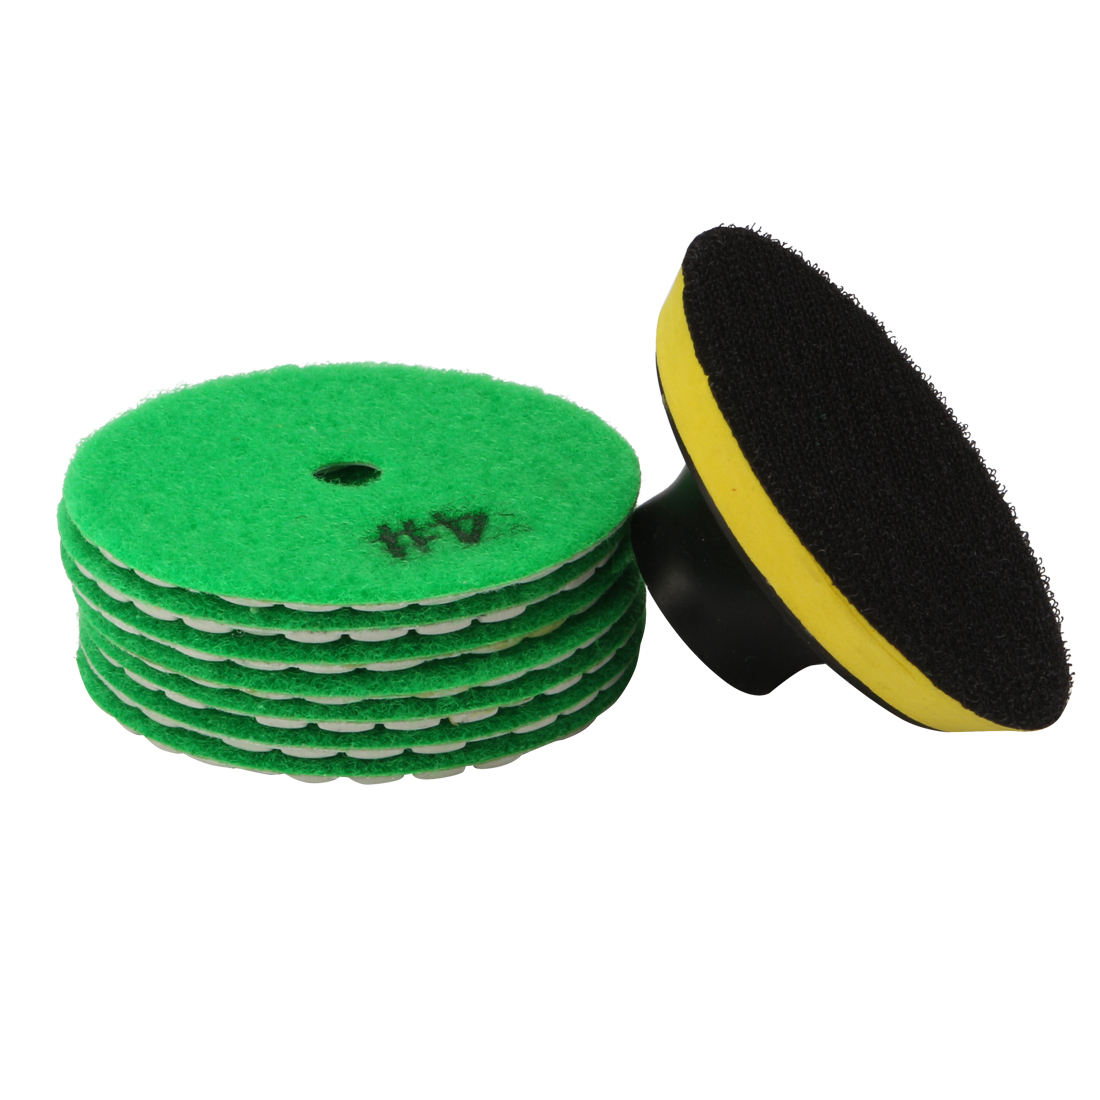 "3"" Diamond Dry Polishing Pad Grit 1000 7PCS for Sanding Marble Granite Stone"